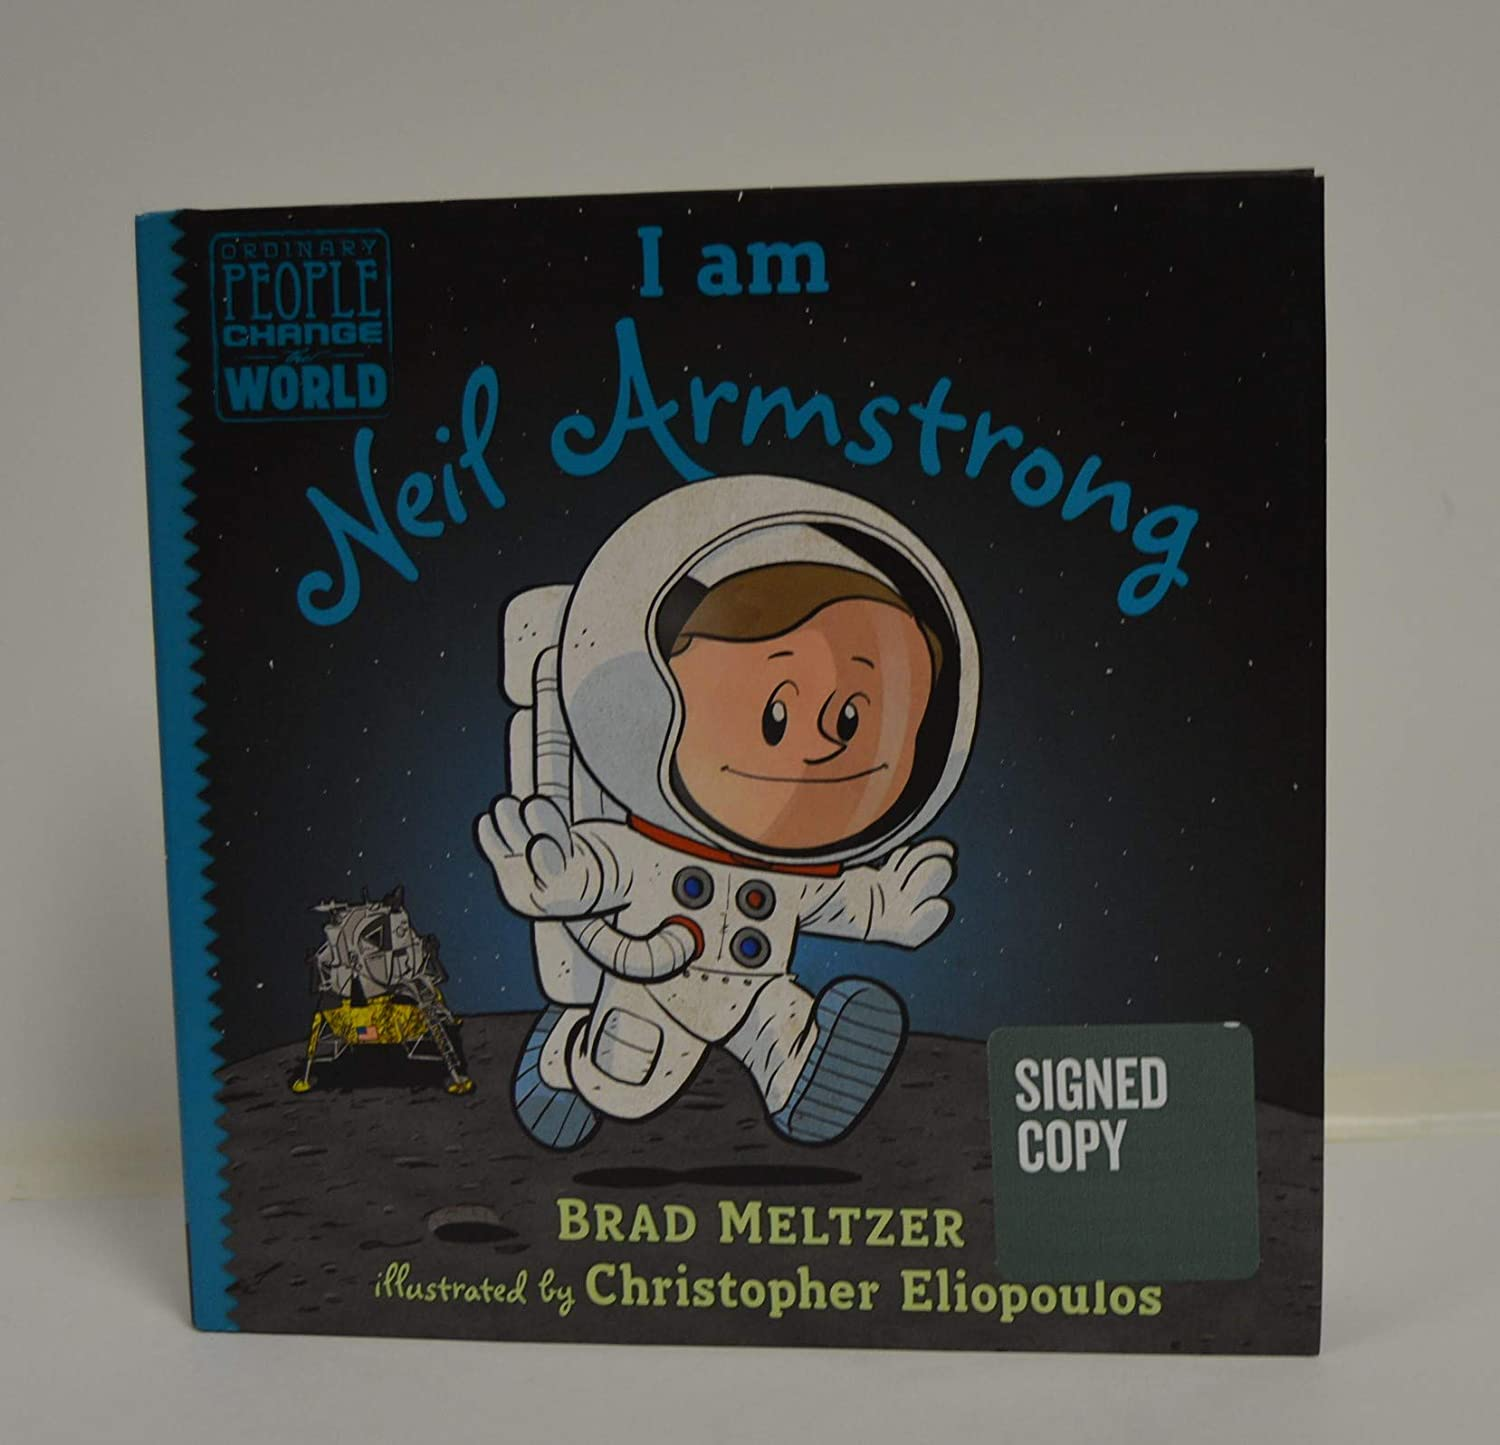 I am Neil Armstrong (Ordinary People Change the World) HARDCOVER Book FIRST EDITION signed by author BRAD MELTZER and Illustrator CHRISTOPHER ELIOPOULOS